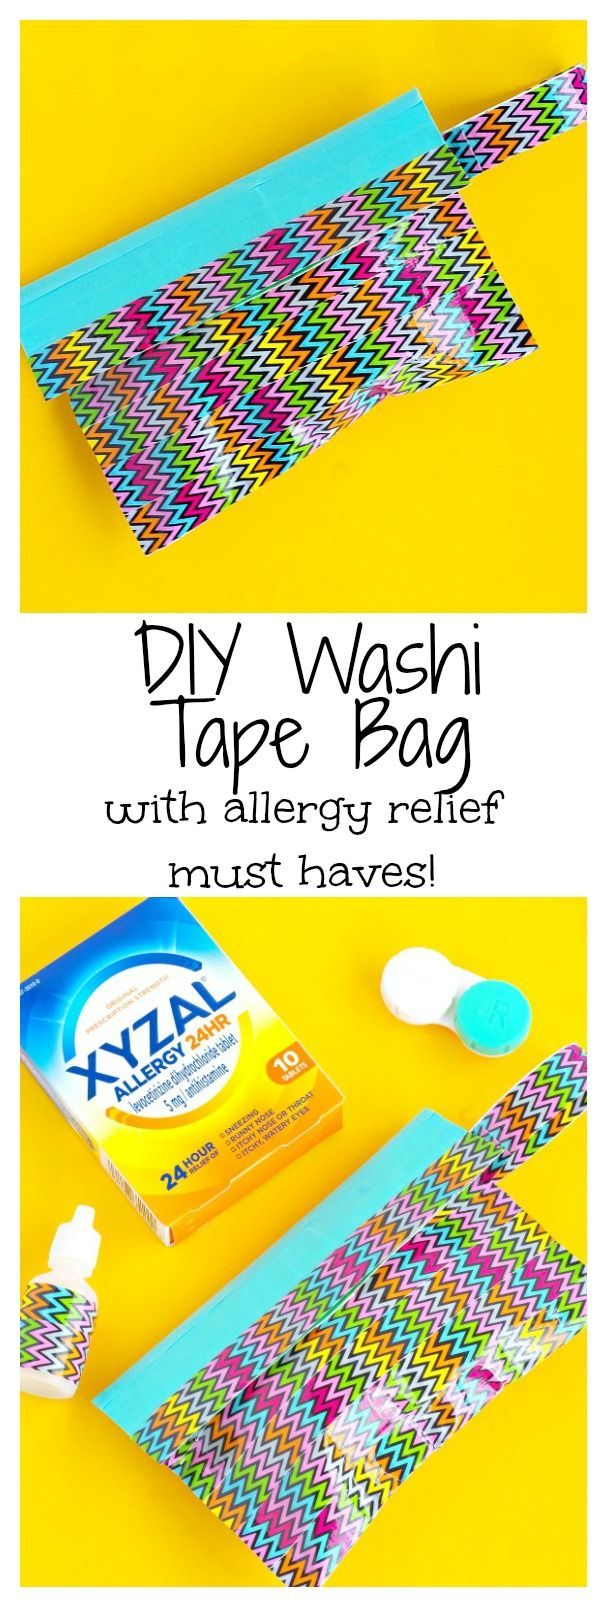 DIY Washi Tape Bag with allergy relief must haves #ad #forgetallergies